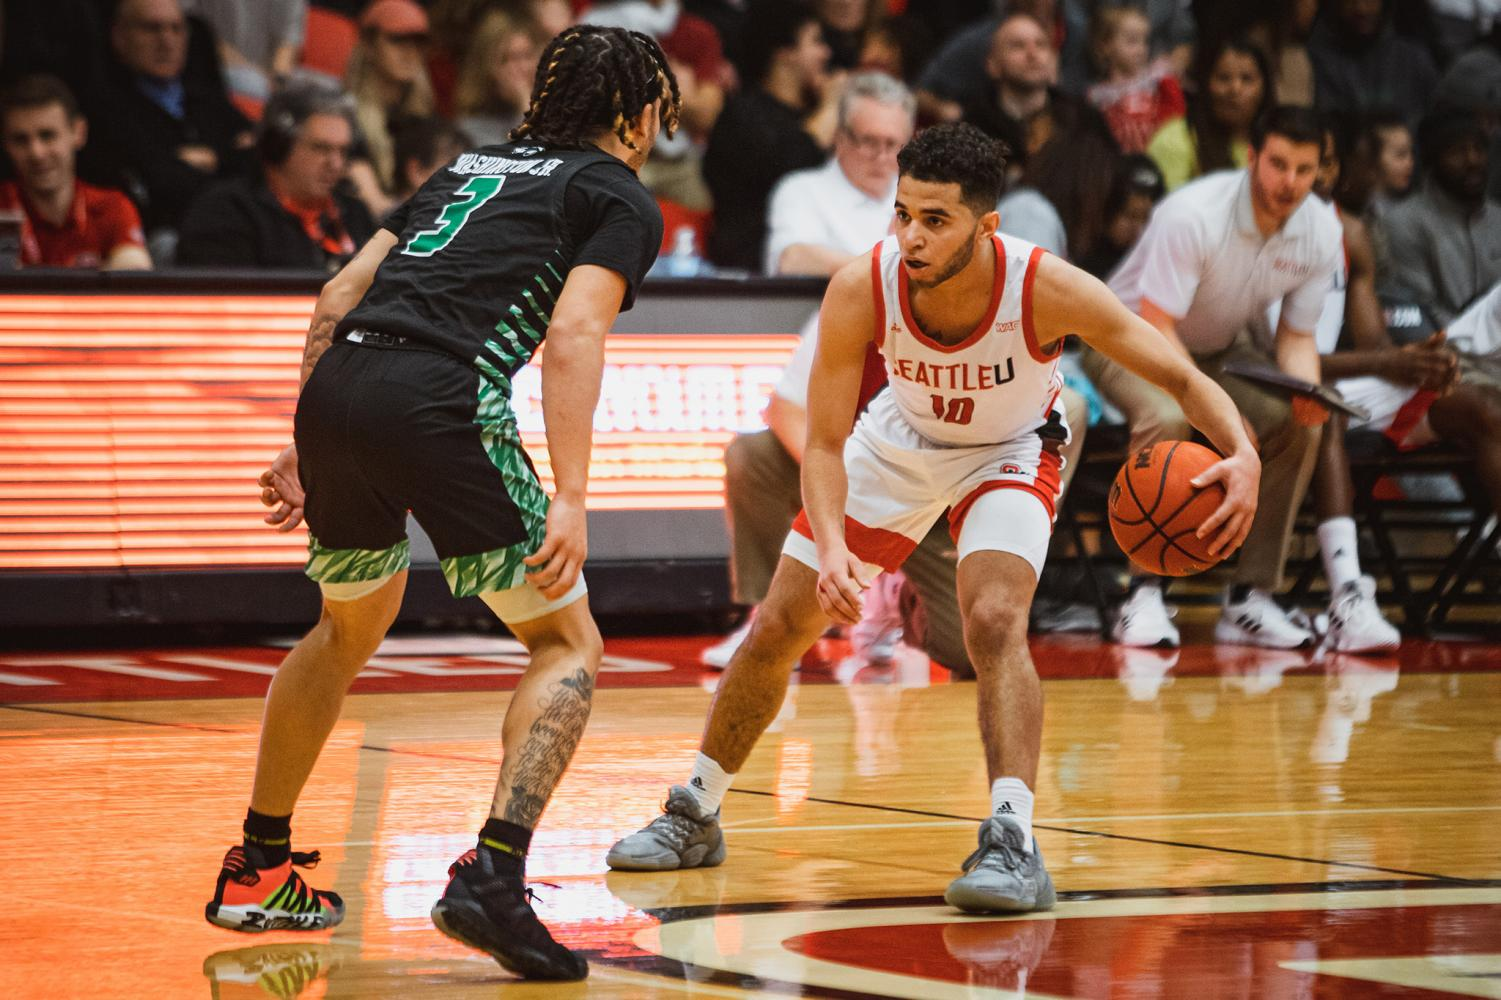 Aaron Nettles matching up against Utah Valley's defense on Saturday night at the Redhawk Center.